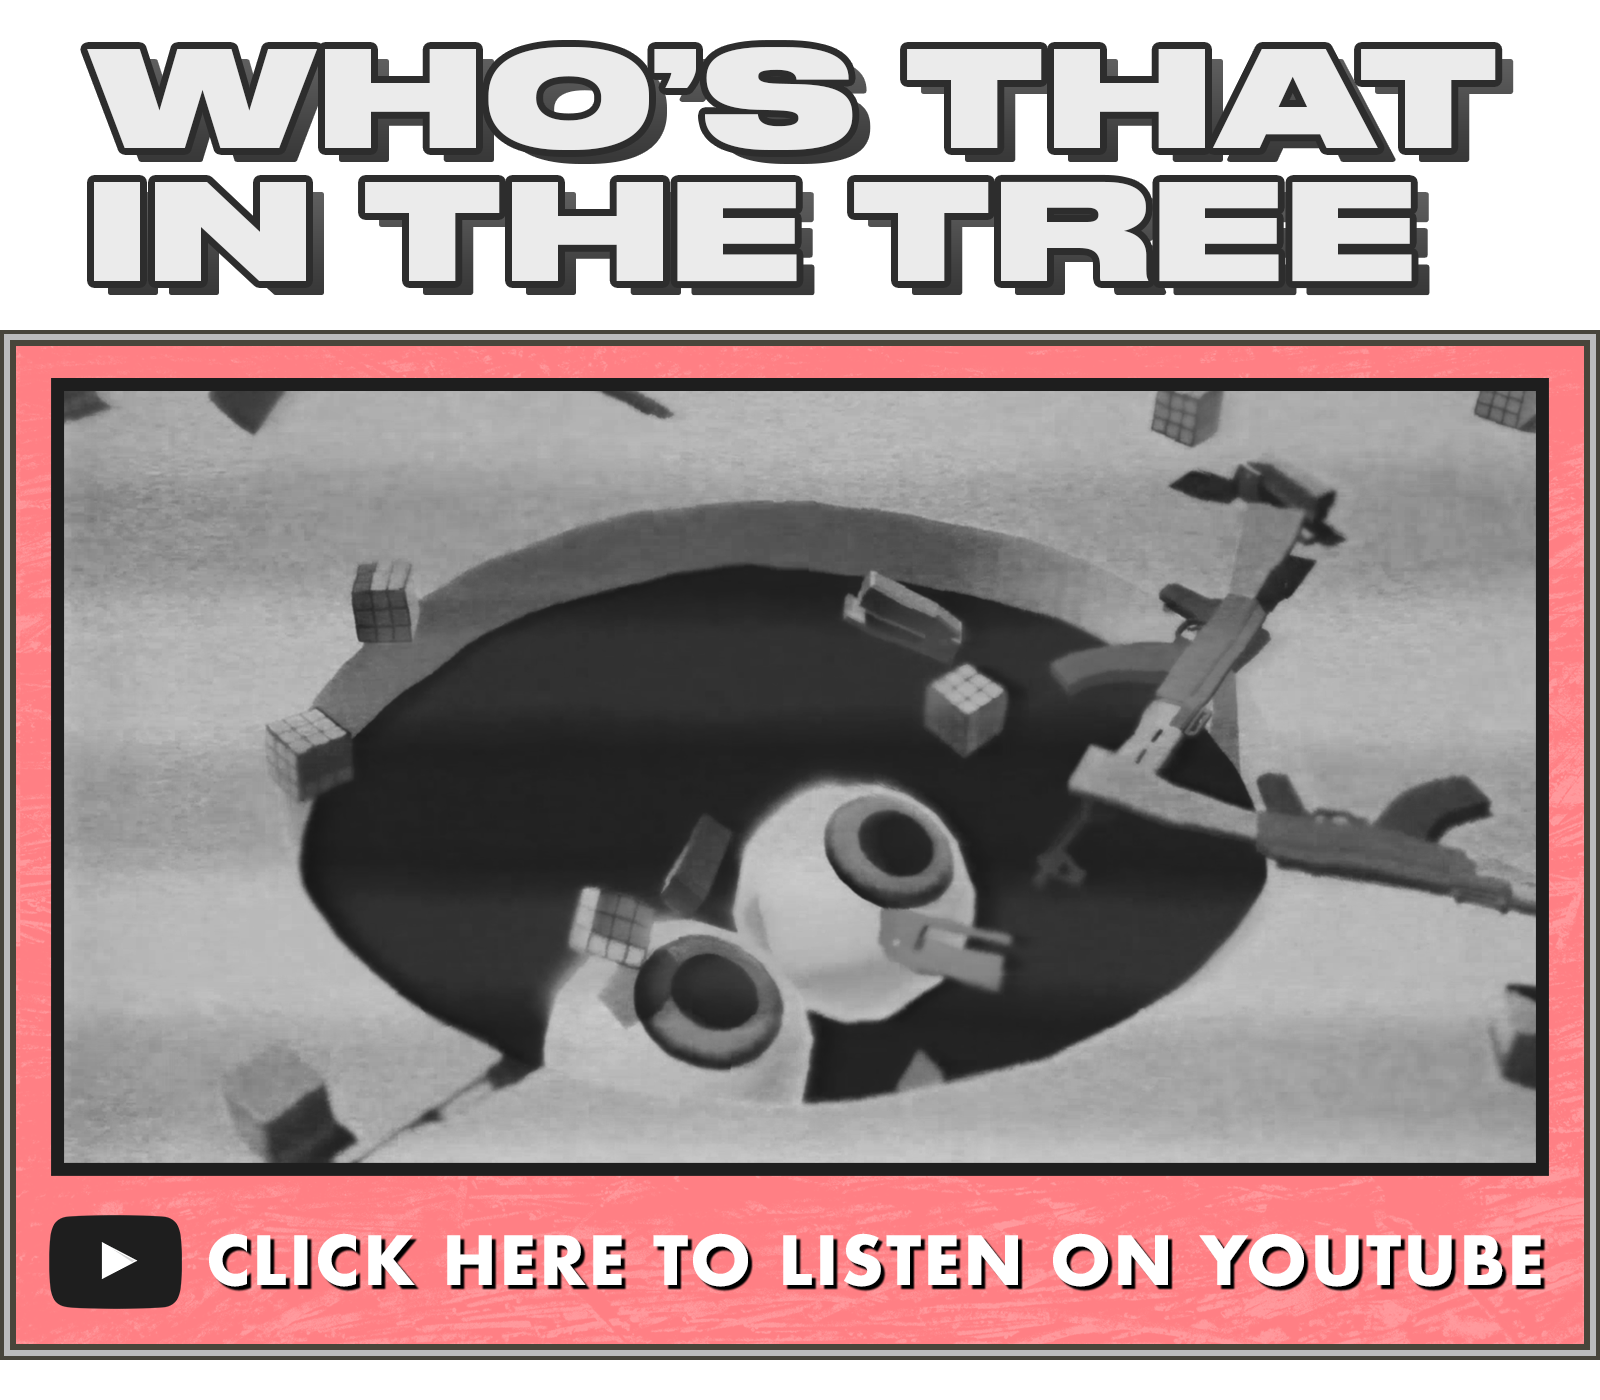 WhosThatInTheTree